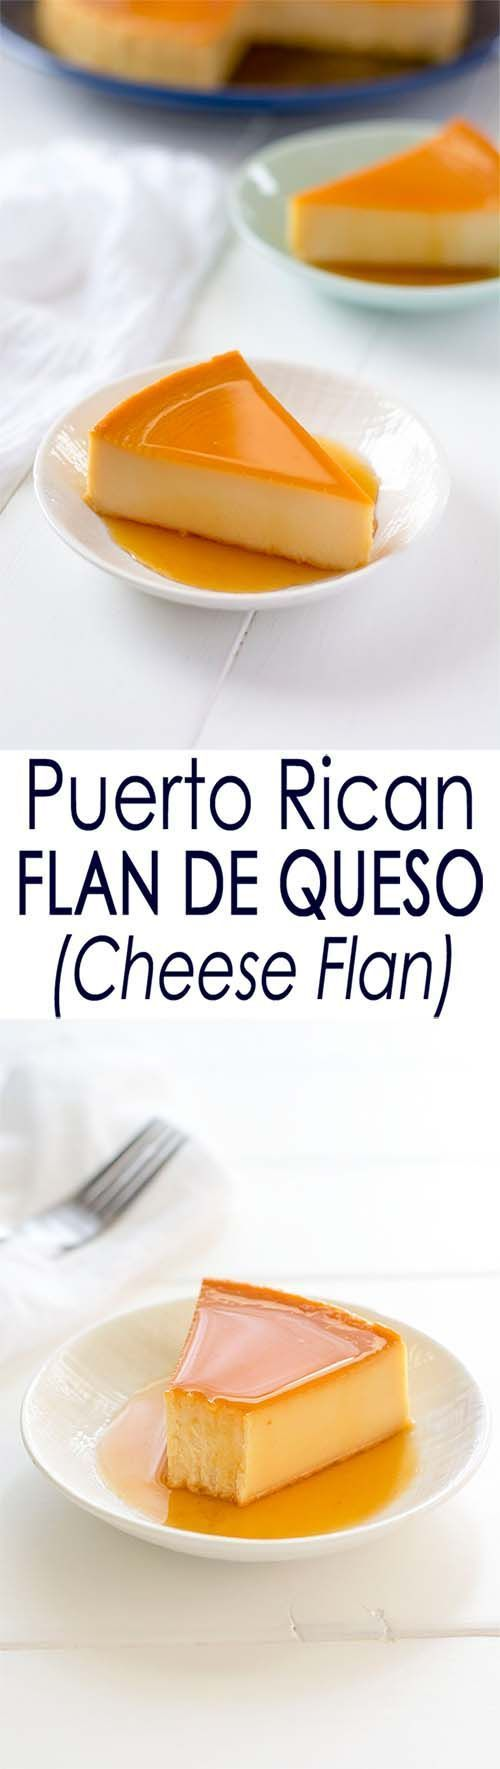 30 Postres Ideas Puerto Rico Food Caribbean Recipes Hispanic Food